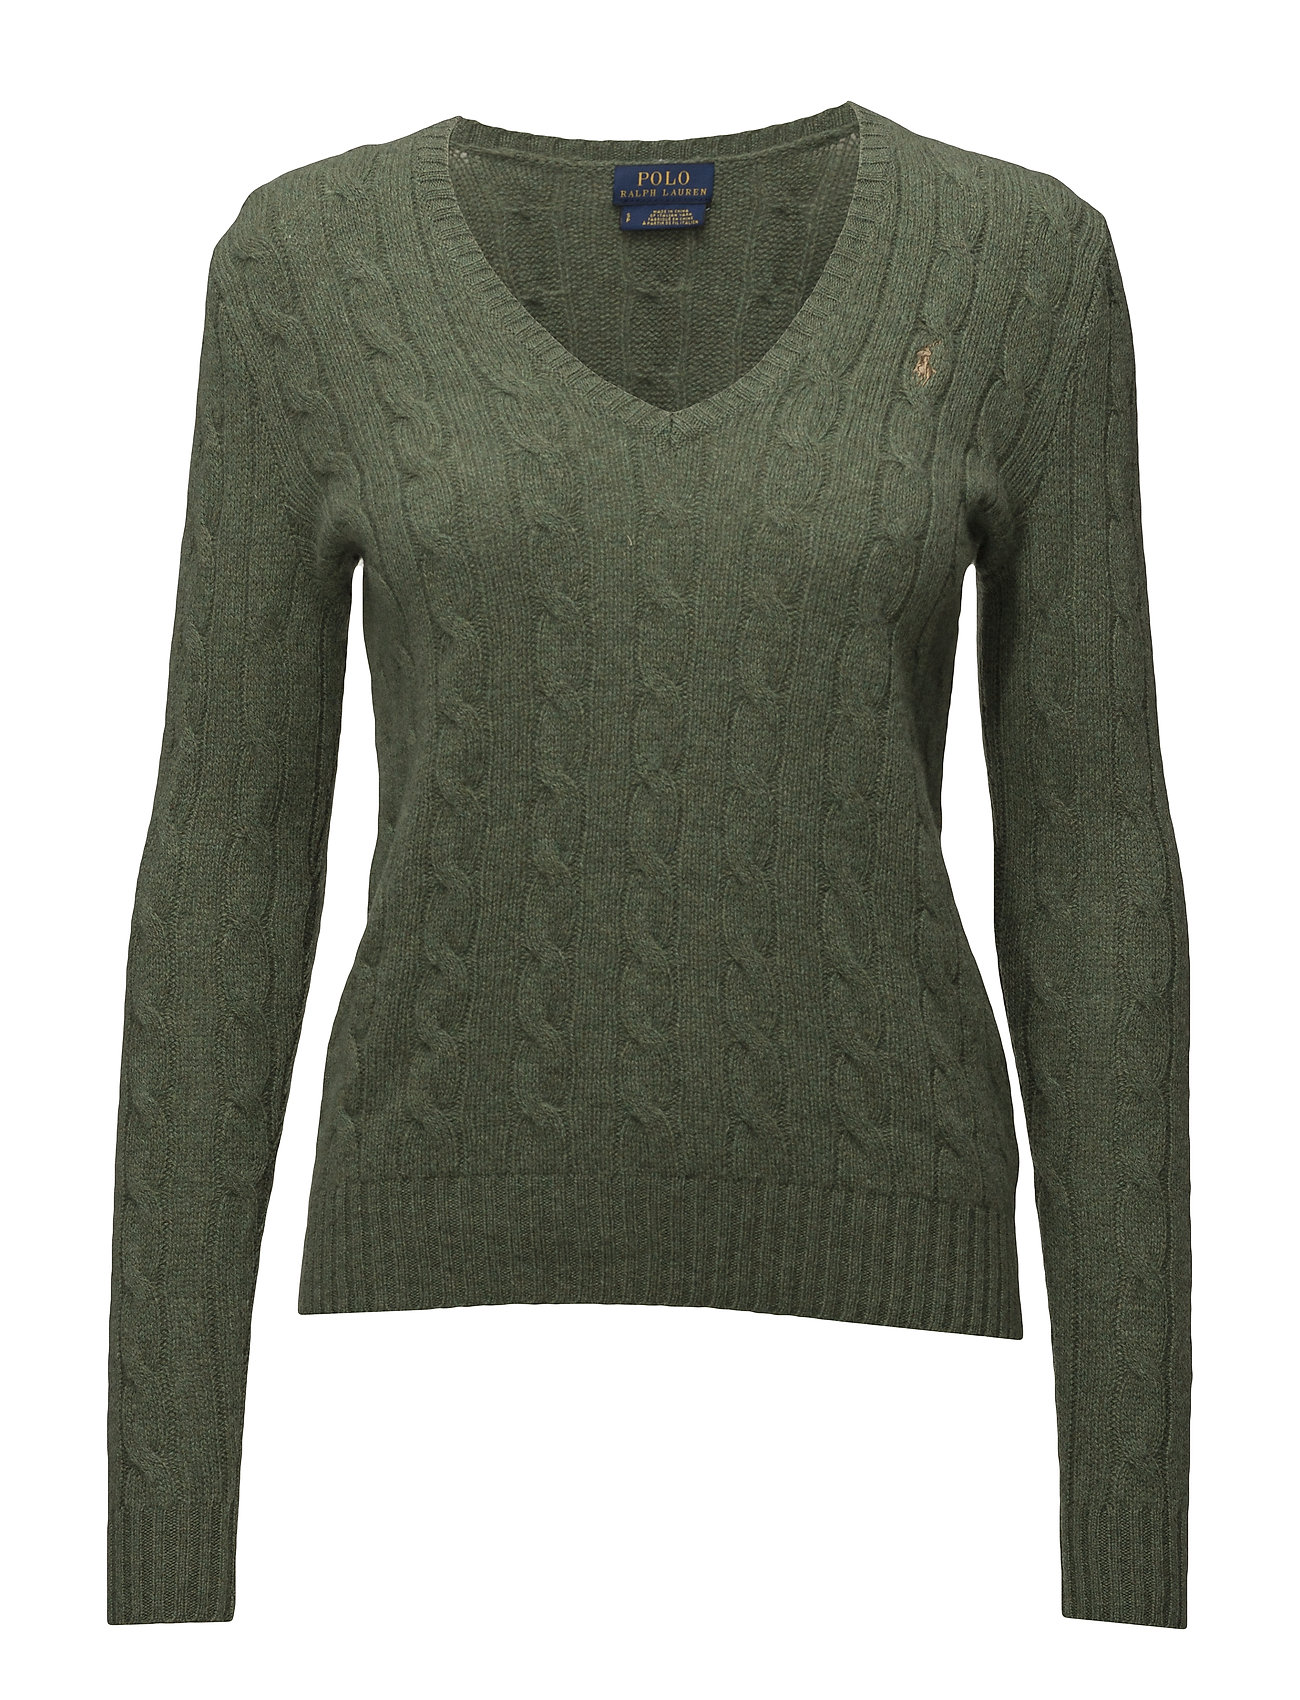 Wool-blend Cable-knit Sweater (Lovette Heather) (£83.30) - Polo ...